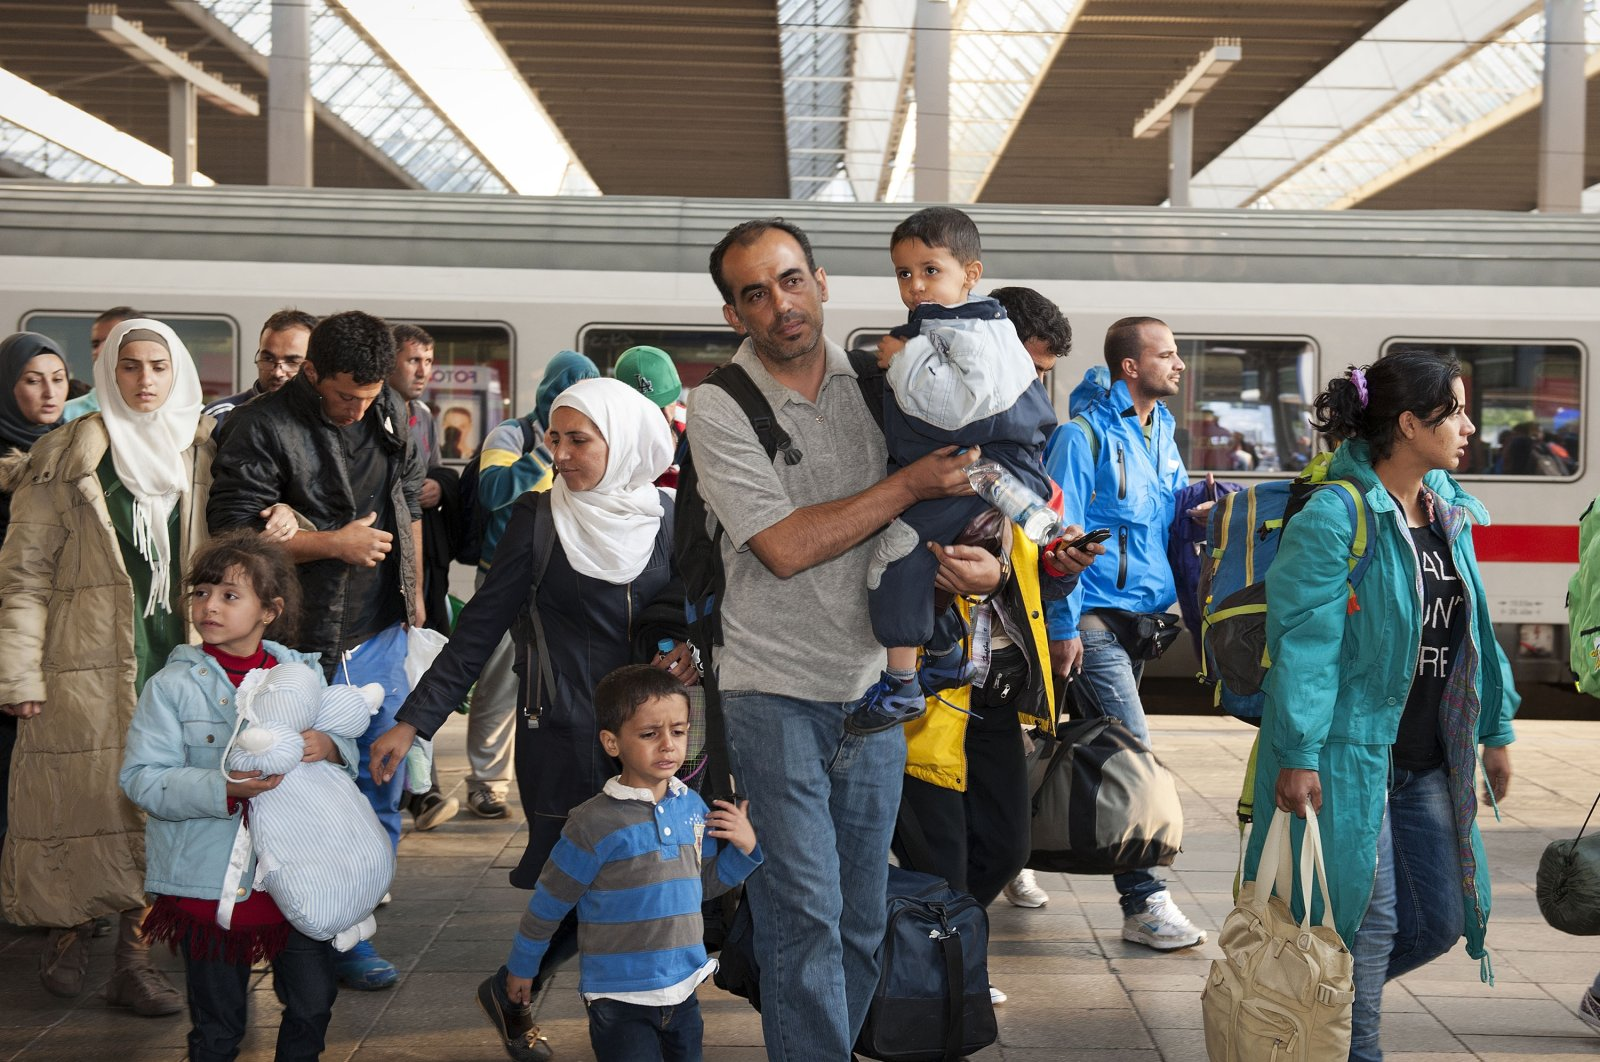 Refugees from Syria, Afghanistan and Balkan countries hopping on the next train at the main station in Munich, Germany, Sept. 10, 2015. (Shutterstock Photo)